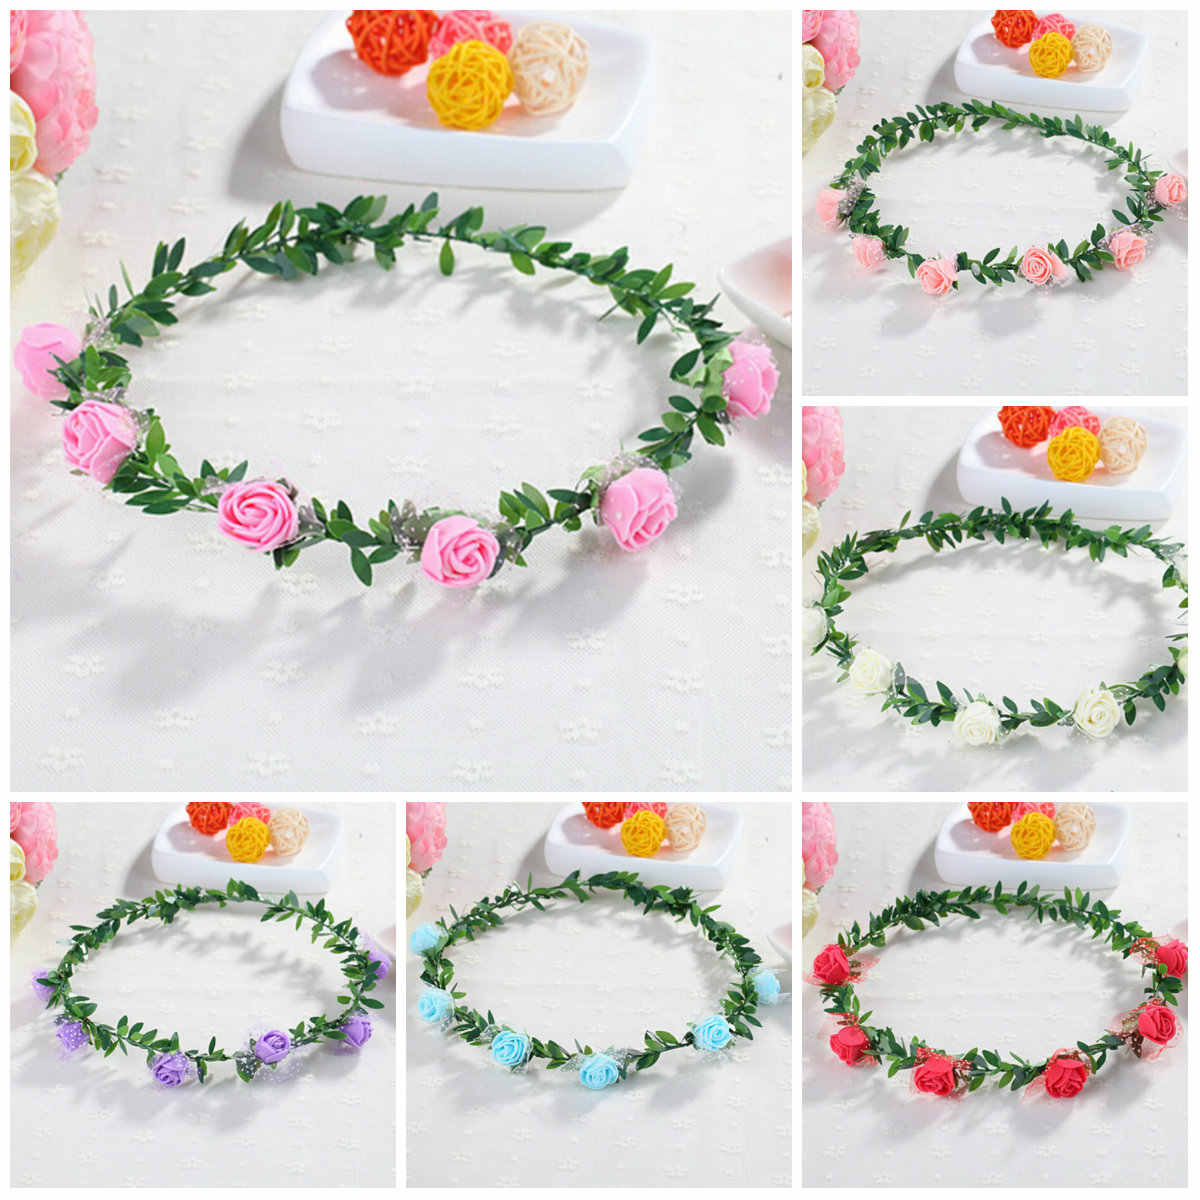 Rose Nelken Pfingstrose Blume Halo Braut Floral Crown Haar Band Kranz Mint Kopf Kranz Party Hochzeit Kopfschmuck Brautjungfer heißer!